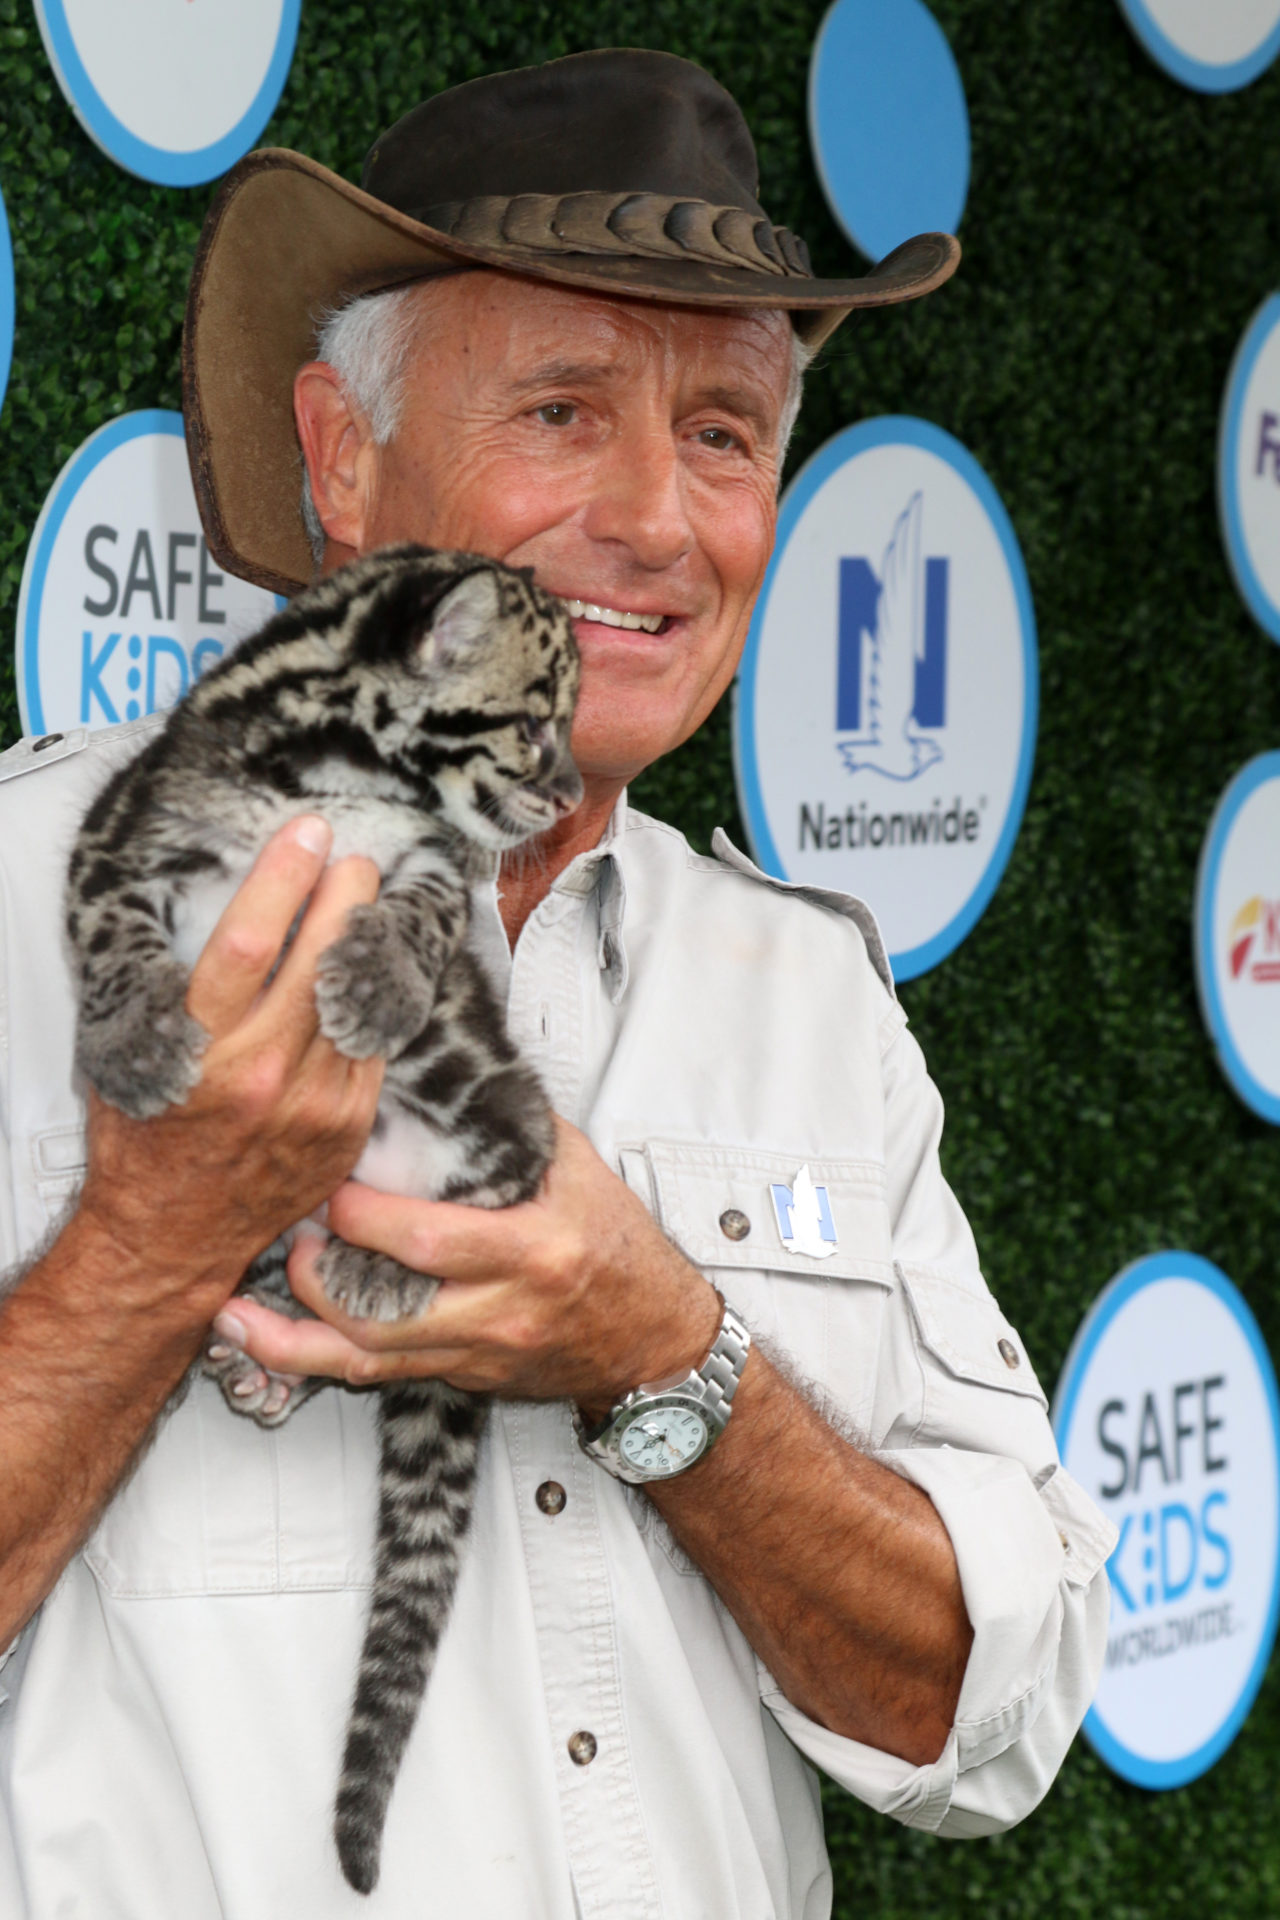 The Animal King, Jungle Jack Hanna, is Coming to Town – 614NOW